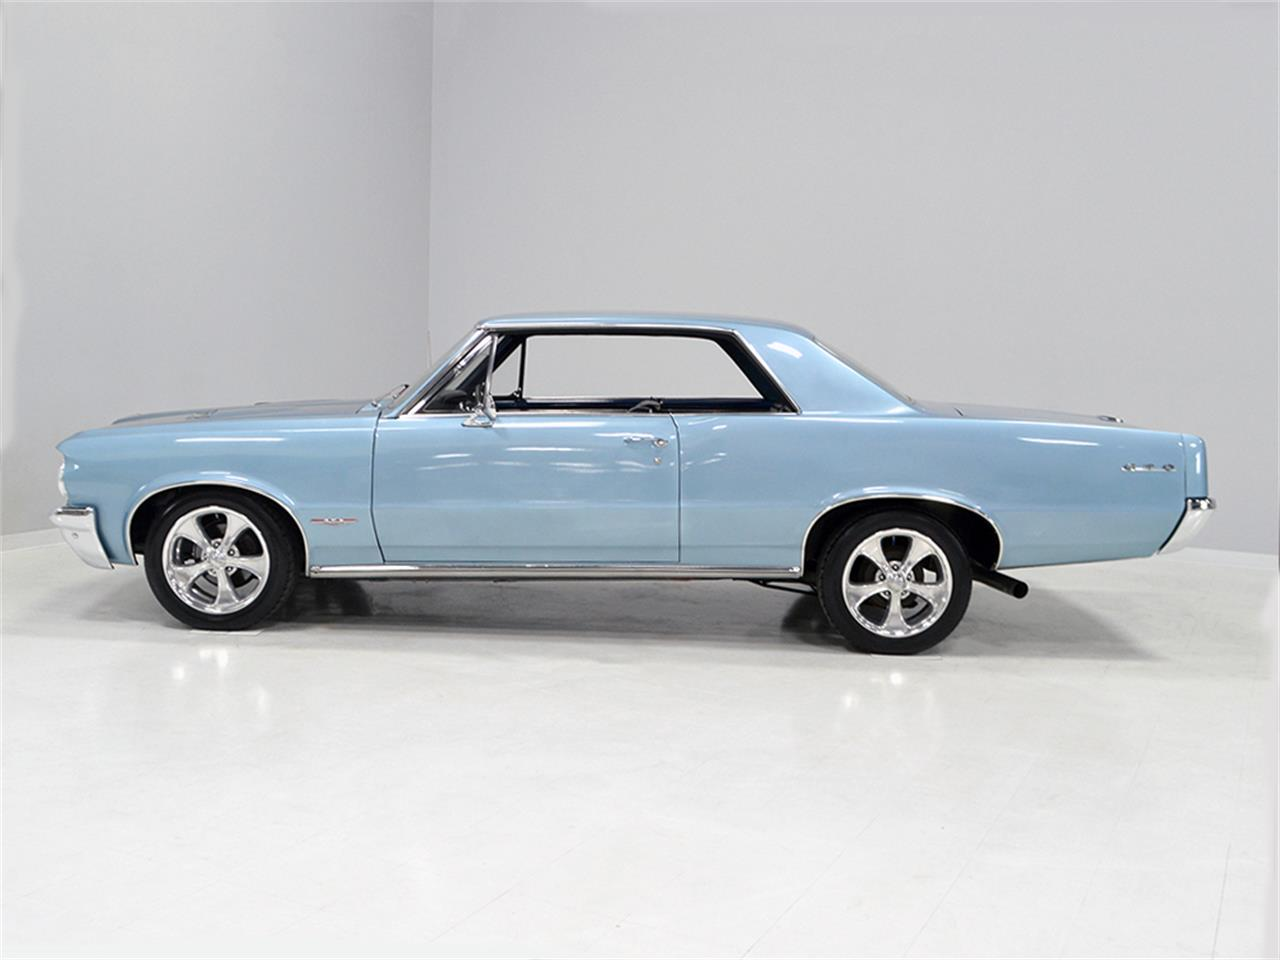 Large Picture of '64 GTO Offered by Harwood Motors, LTD. - MGNK